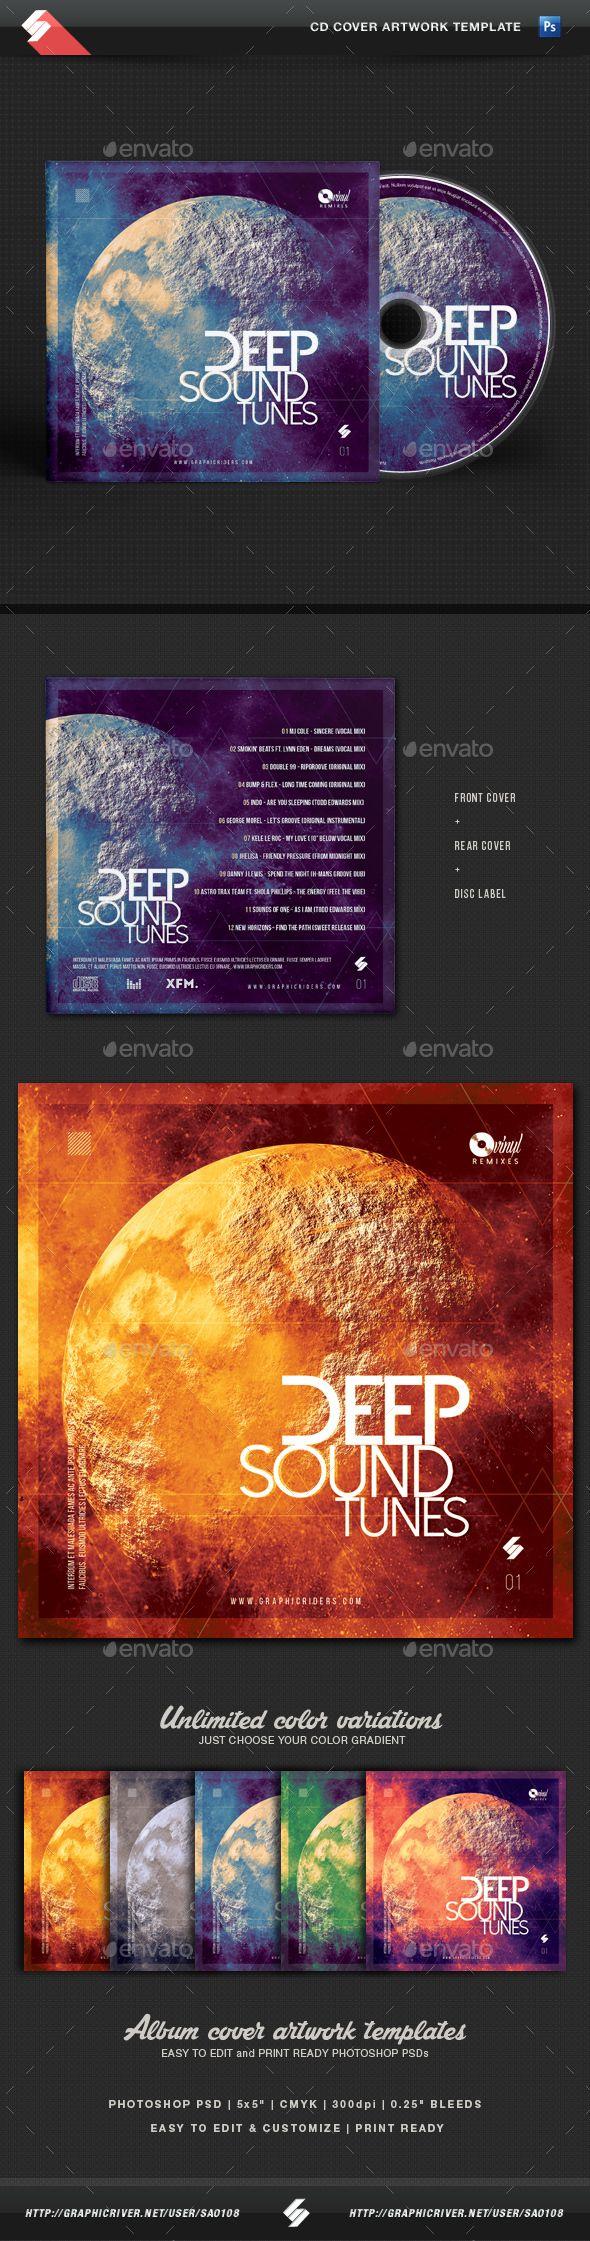 Deep Sound Tunes - CD Cover Template PSD. Download here: http://graphicriver.net/item/deep-sound-tunes-cd-cover-template/14490121?ref=ksioks